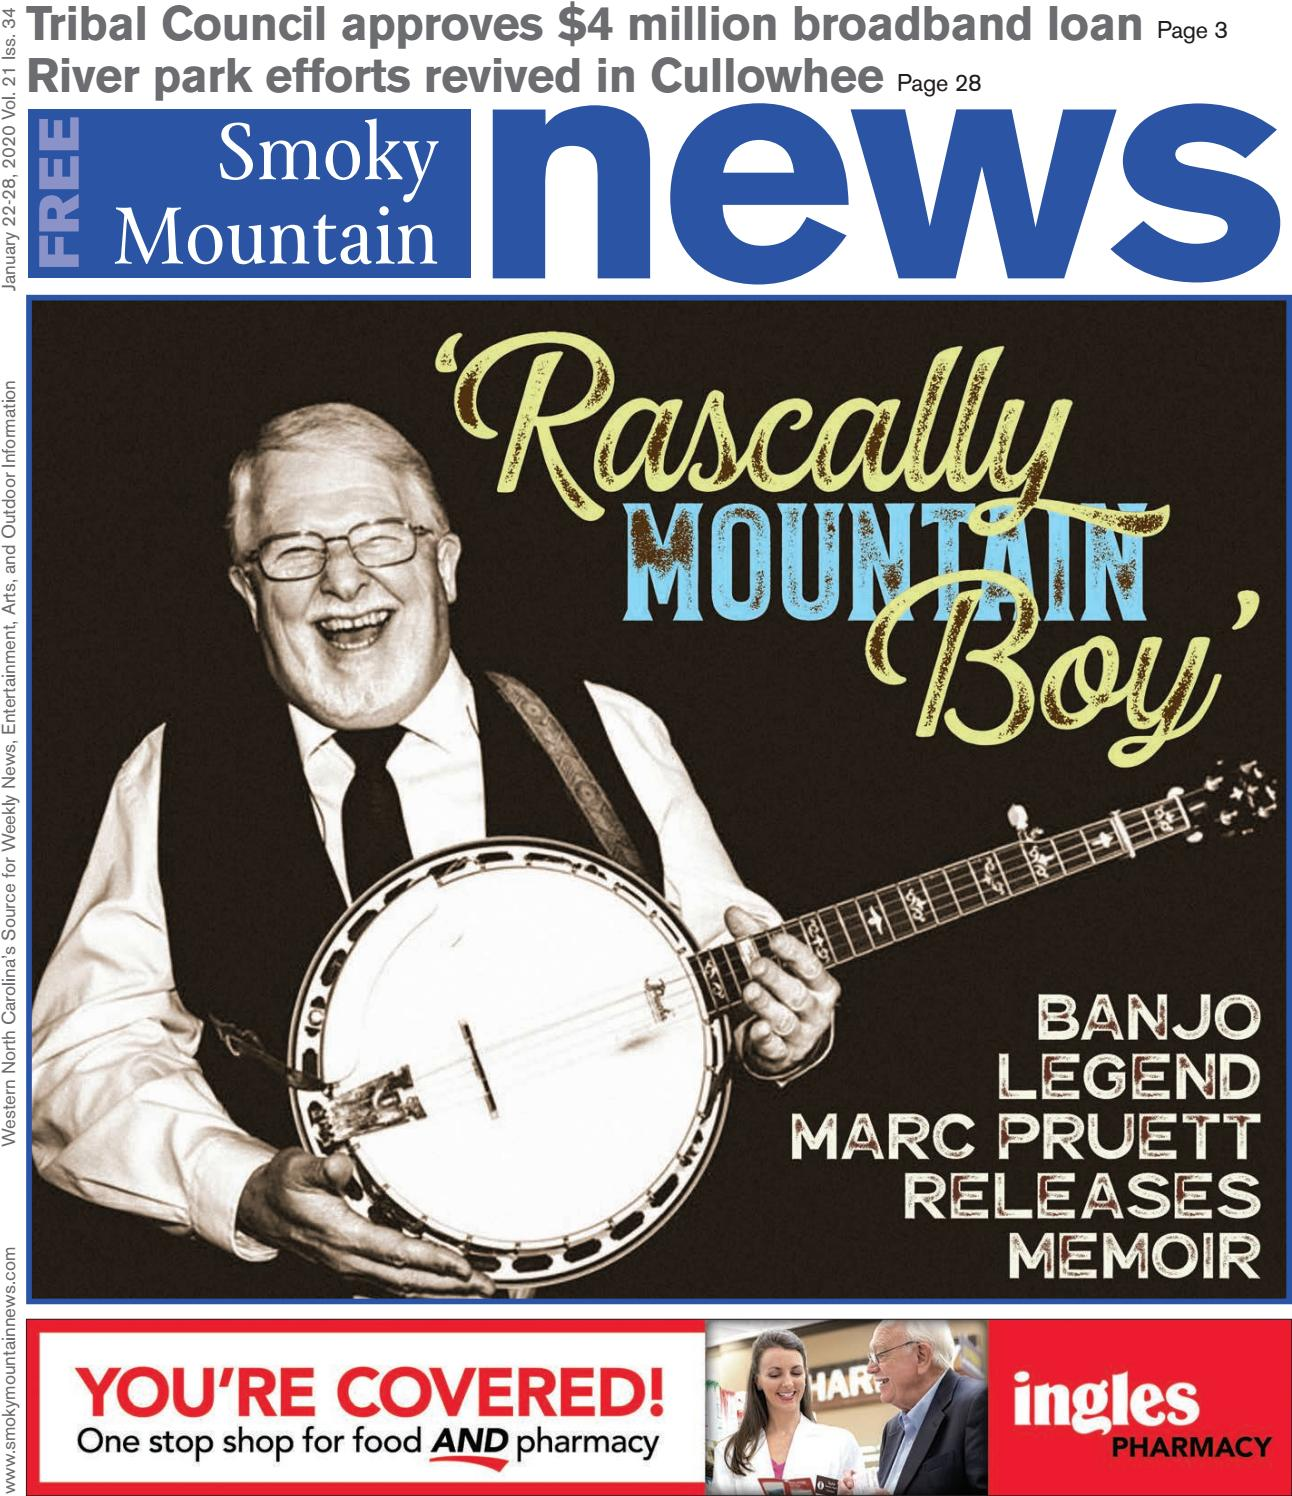 Tree Allergies Mount Nebo Arkansas Christmas 2020 Smoky Mountain News | January 22, 2020 by Smoky Mountain News   issuu